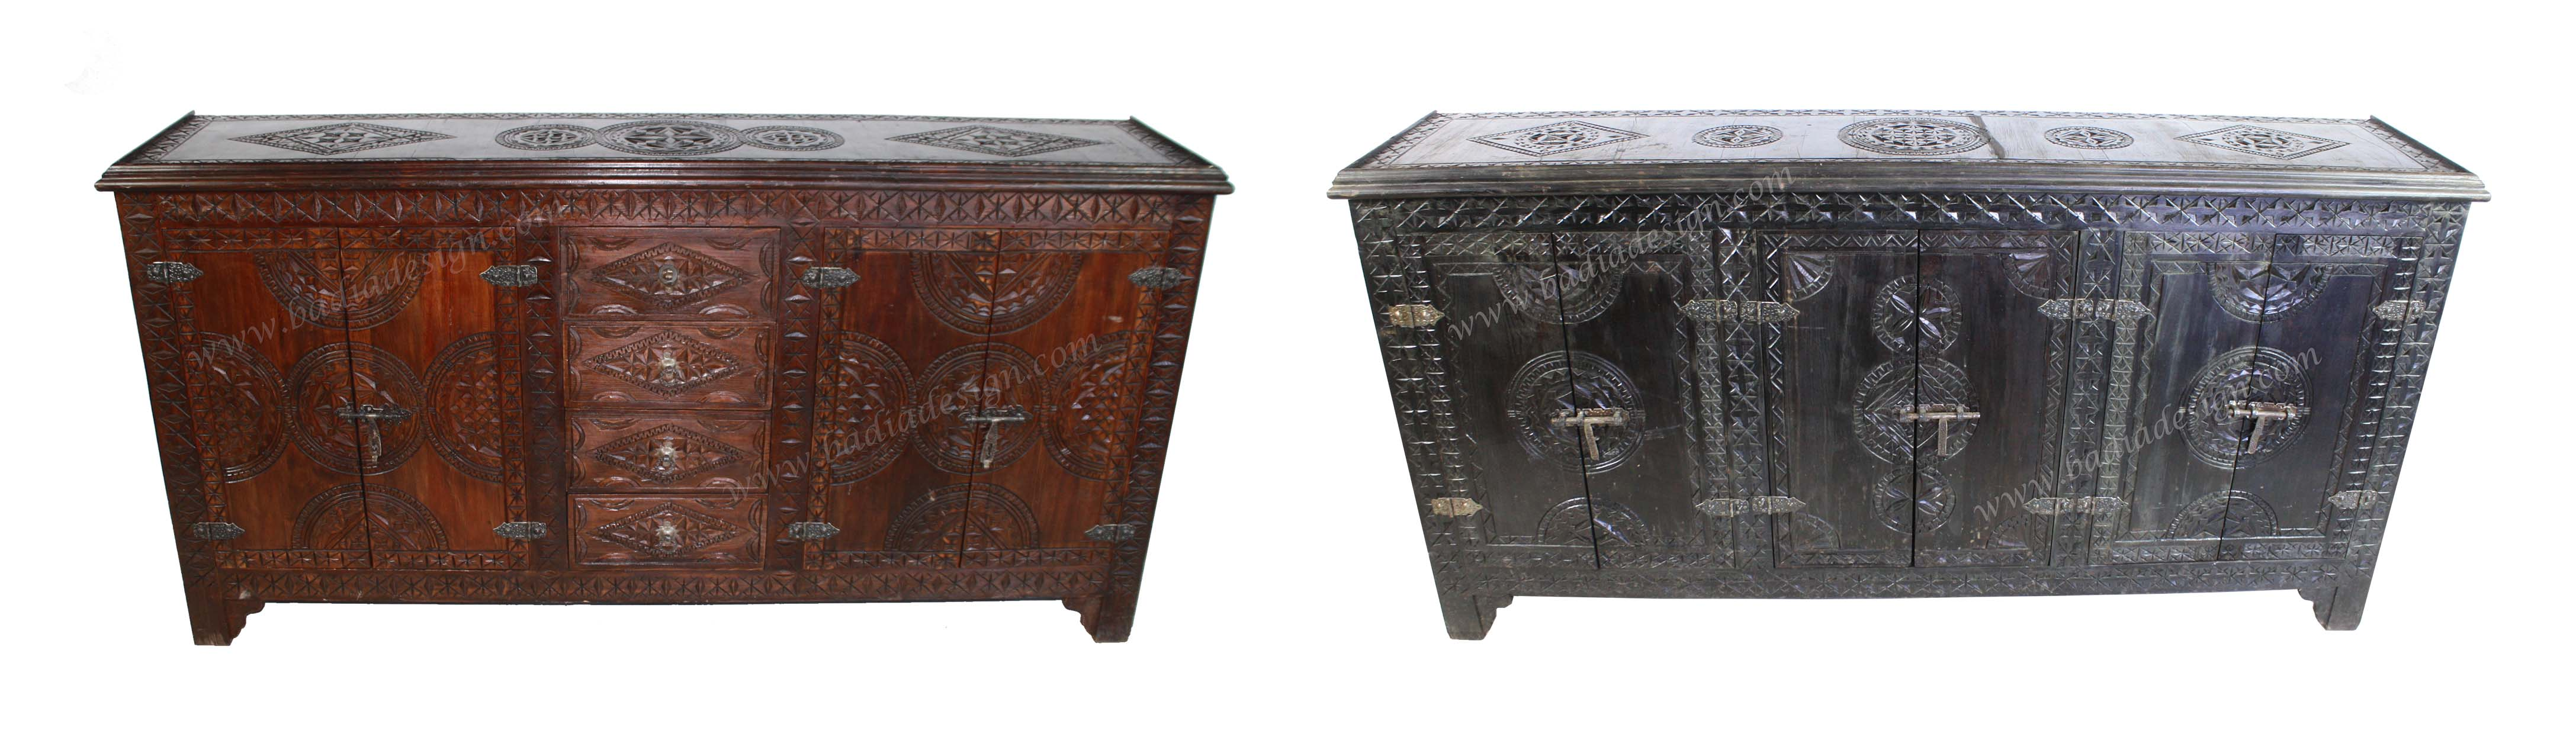 moroccan-antique-hand-carved-wooden-cabinet-cw-ca051.jpg